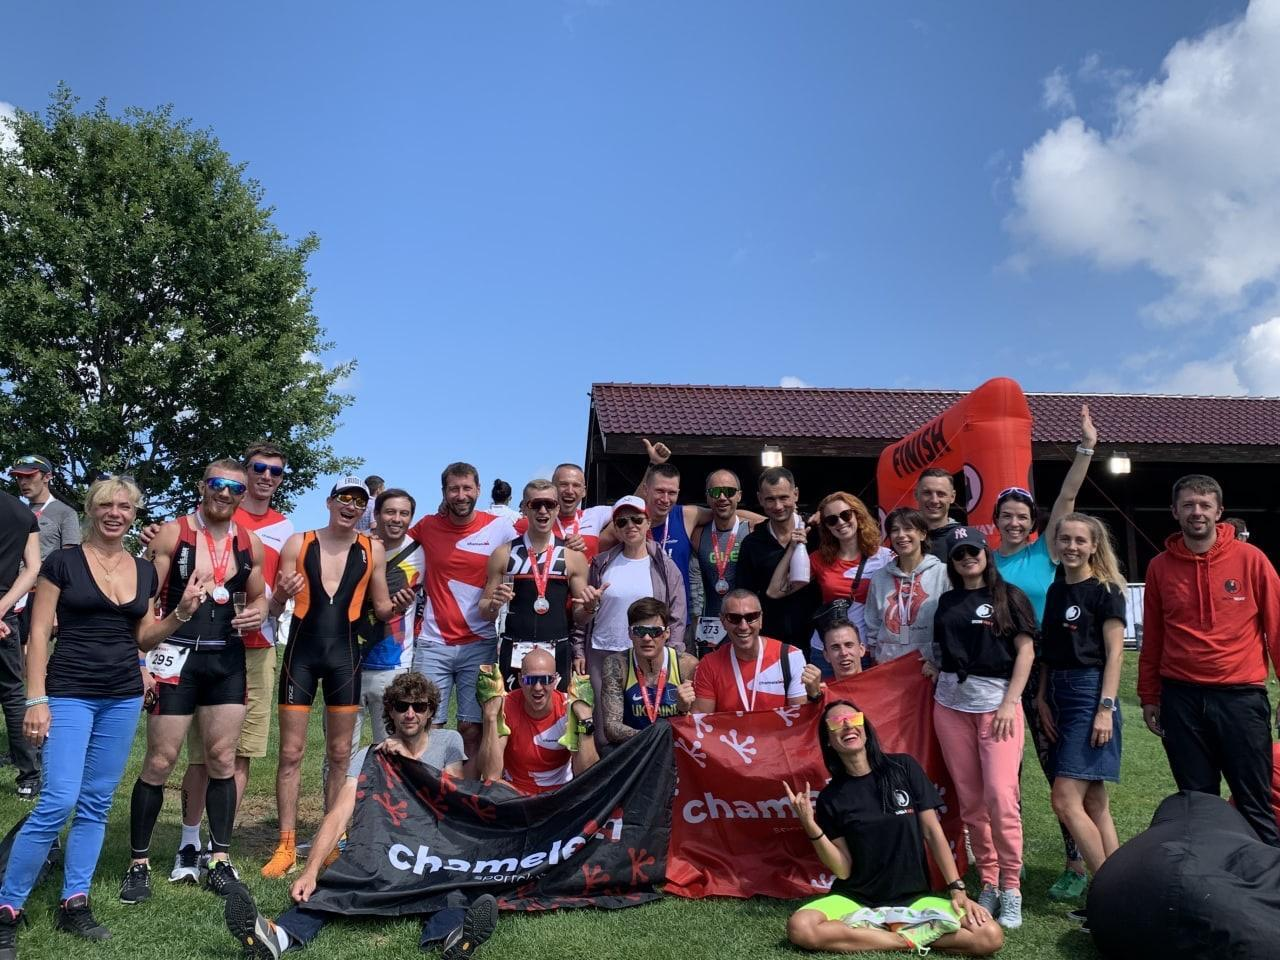 Celebrating the successful race with the Chameleon Club team